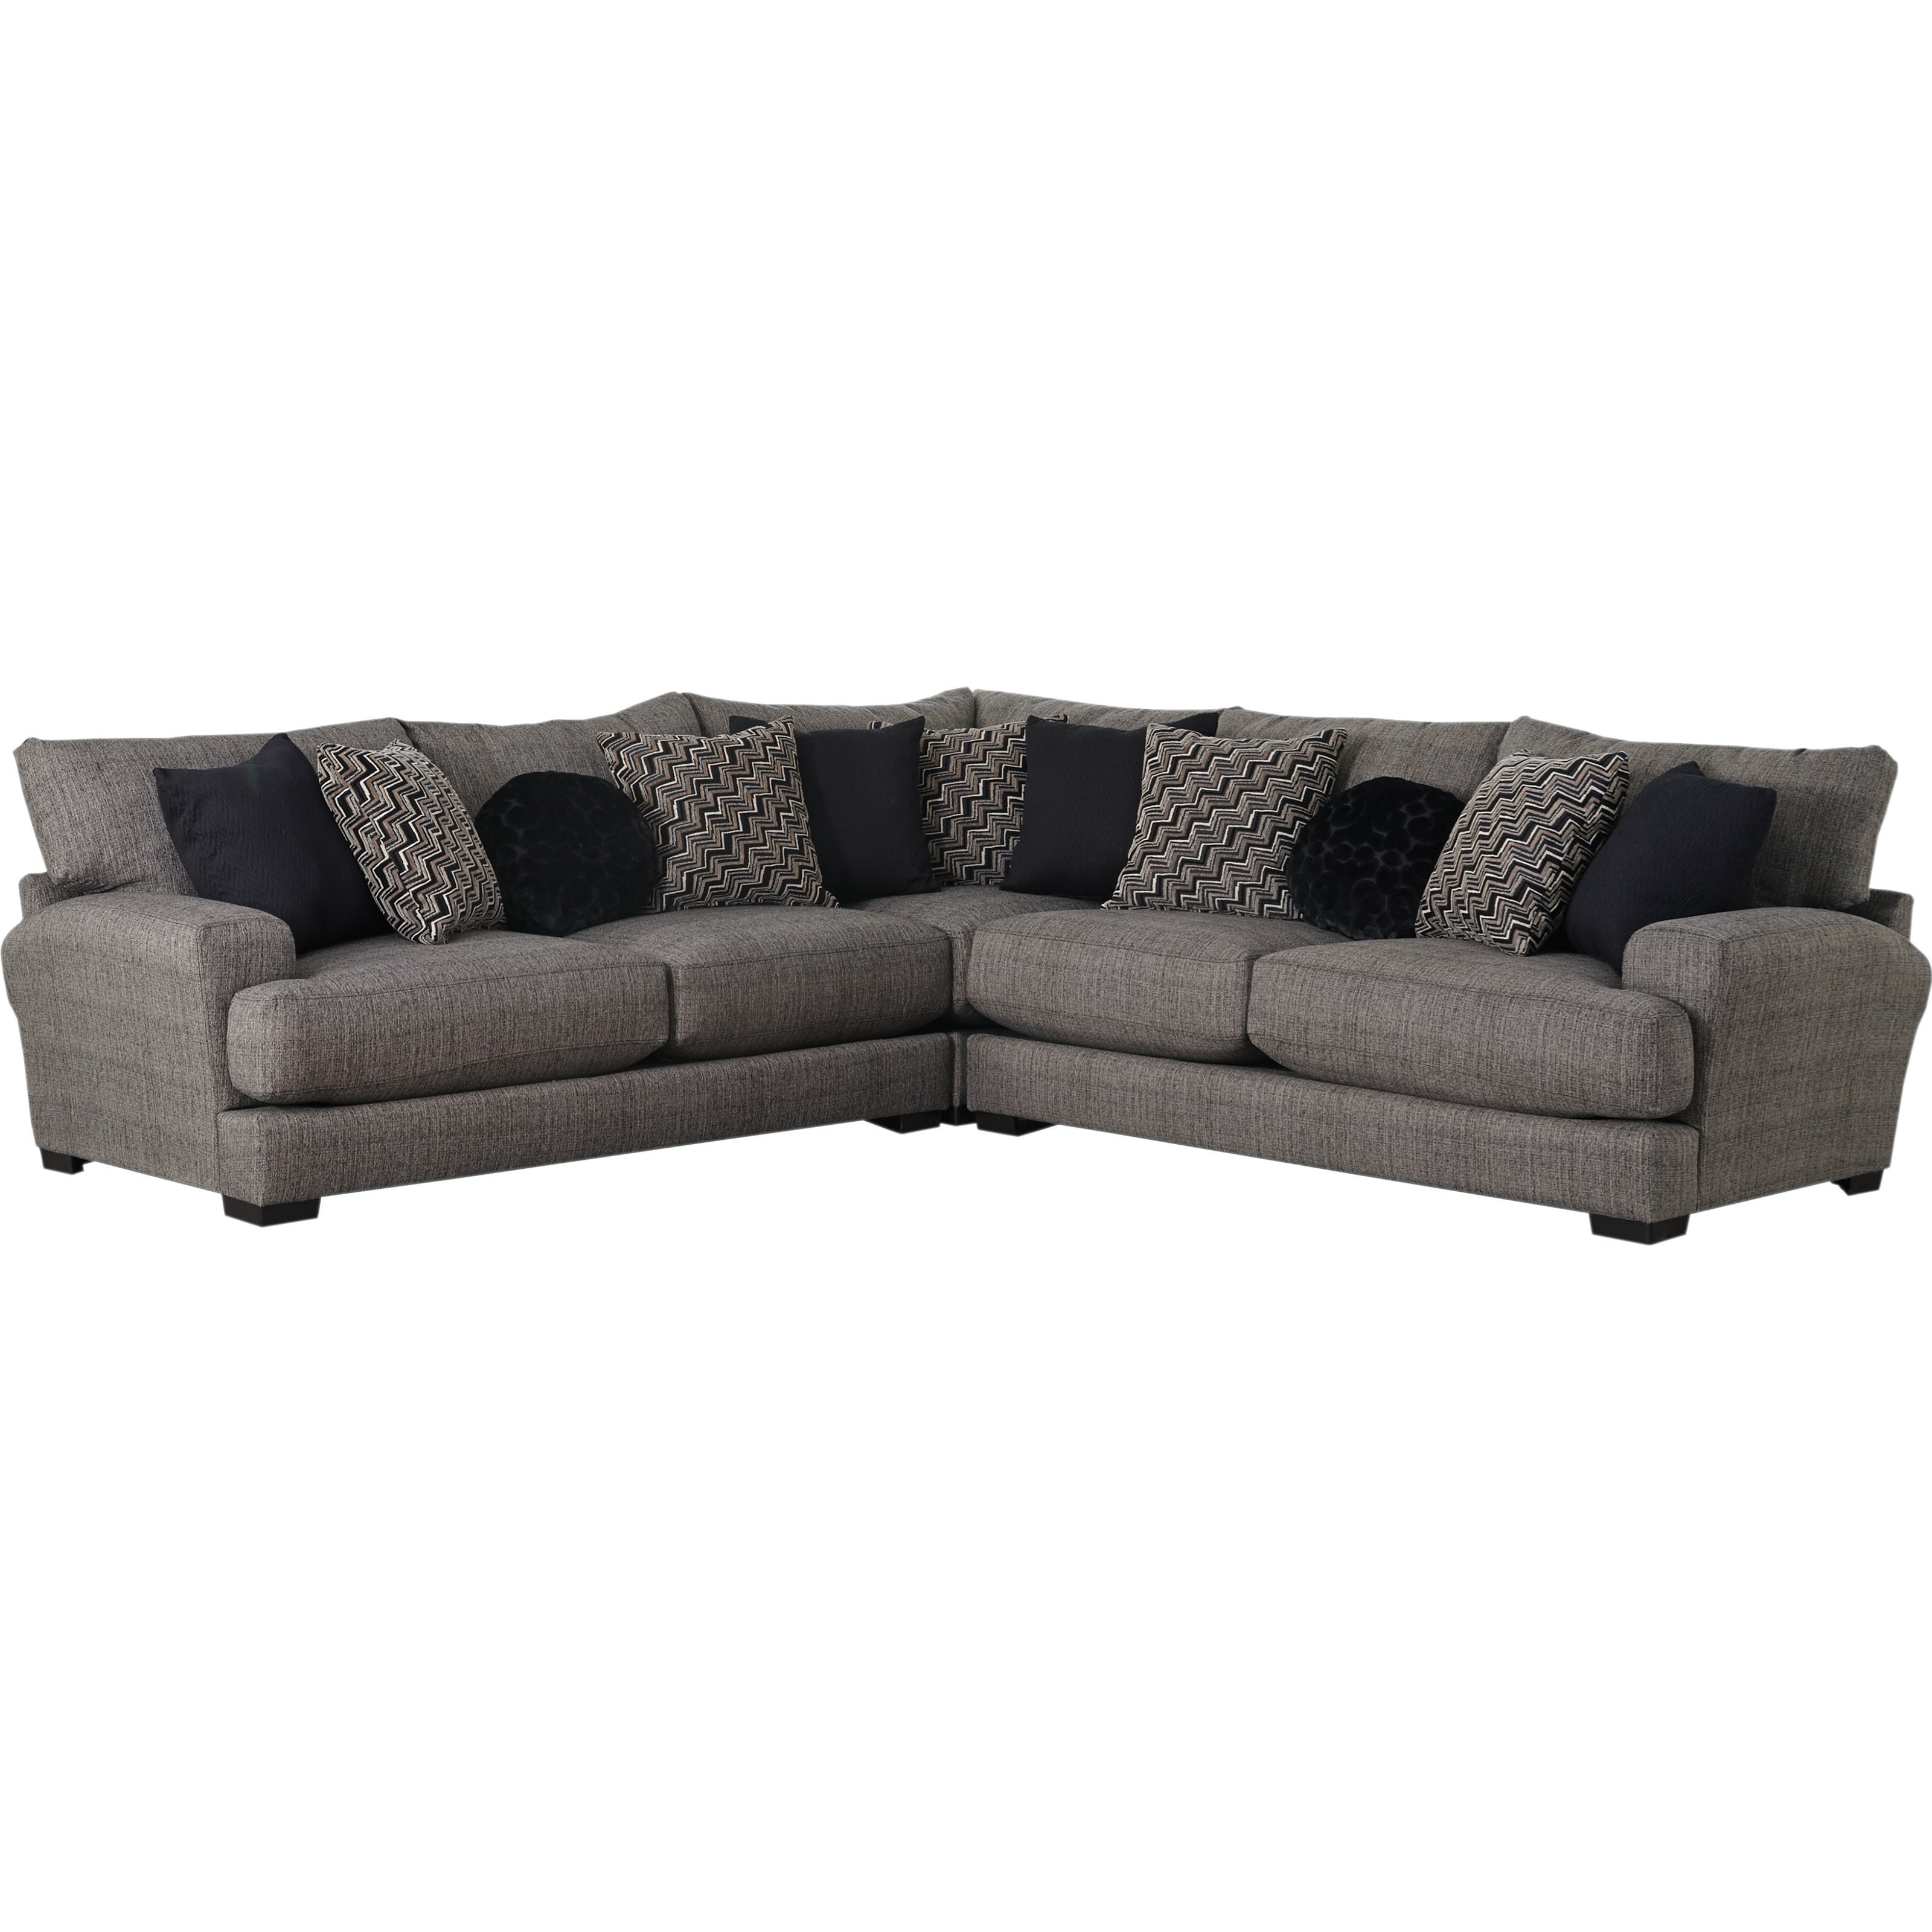 Sectional Sofa With 4 Seats Amp 2 Usb Ports By Jackson